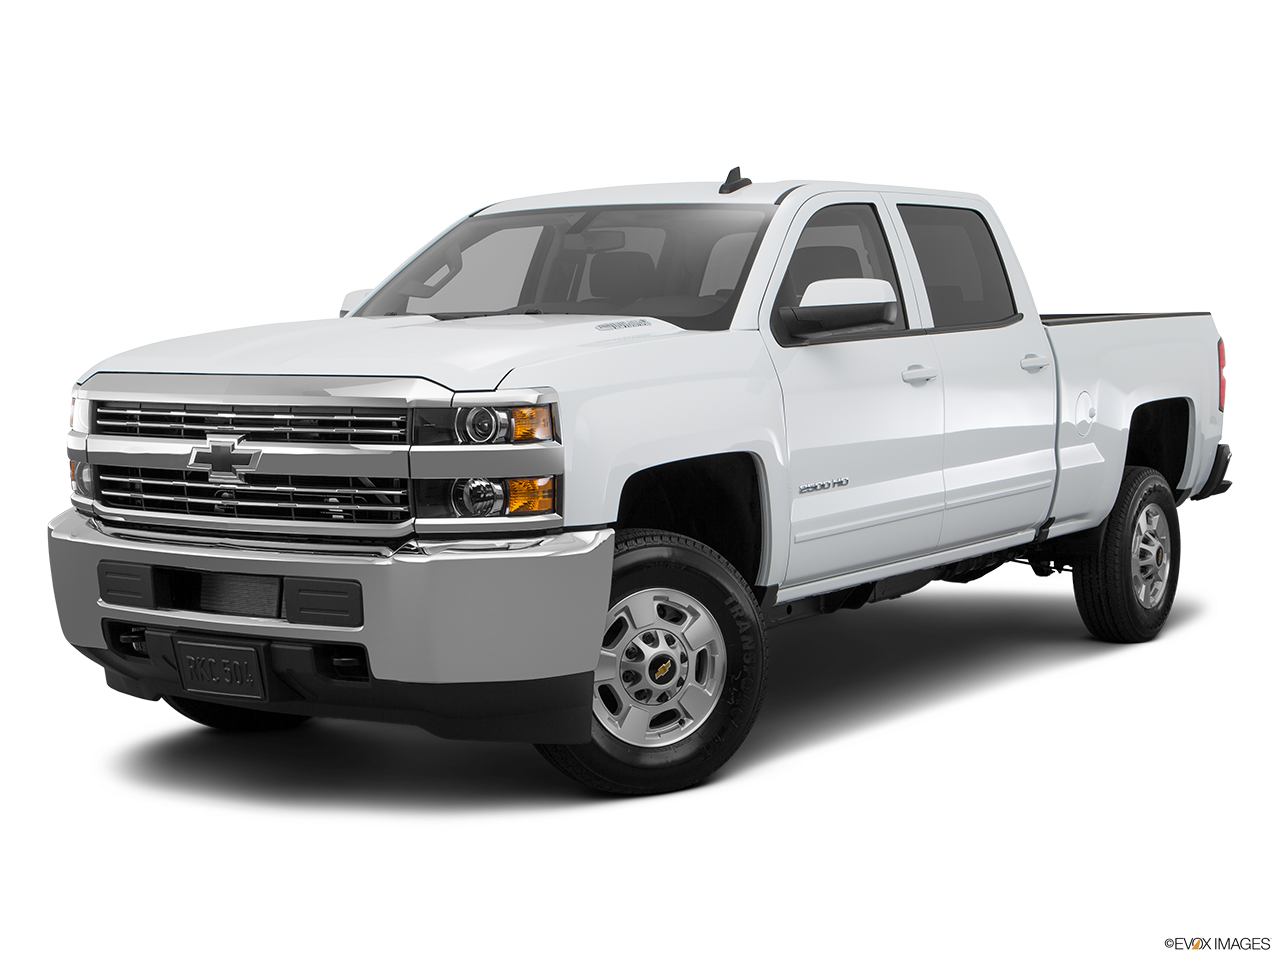 Alamo City Chevrolet is a San Antonio Chevrolet dealer and a new